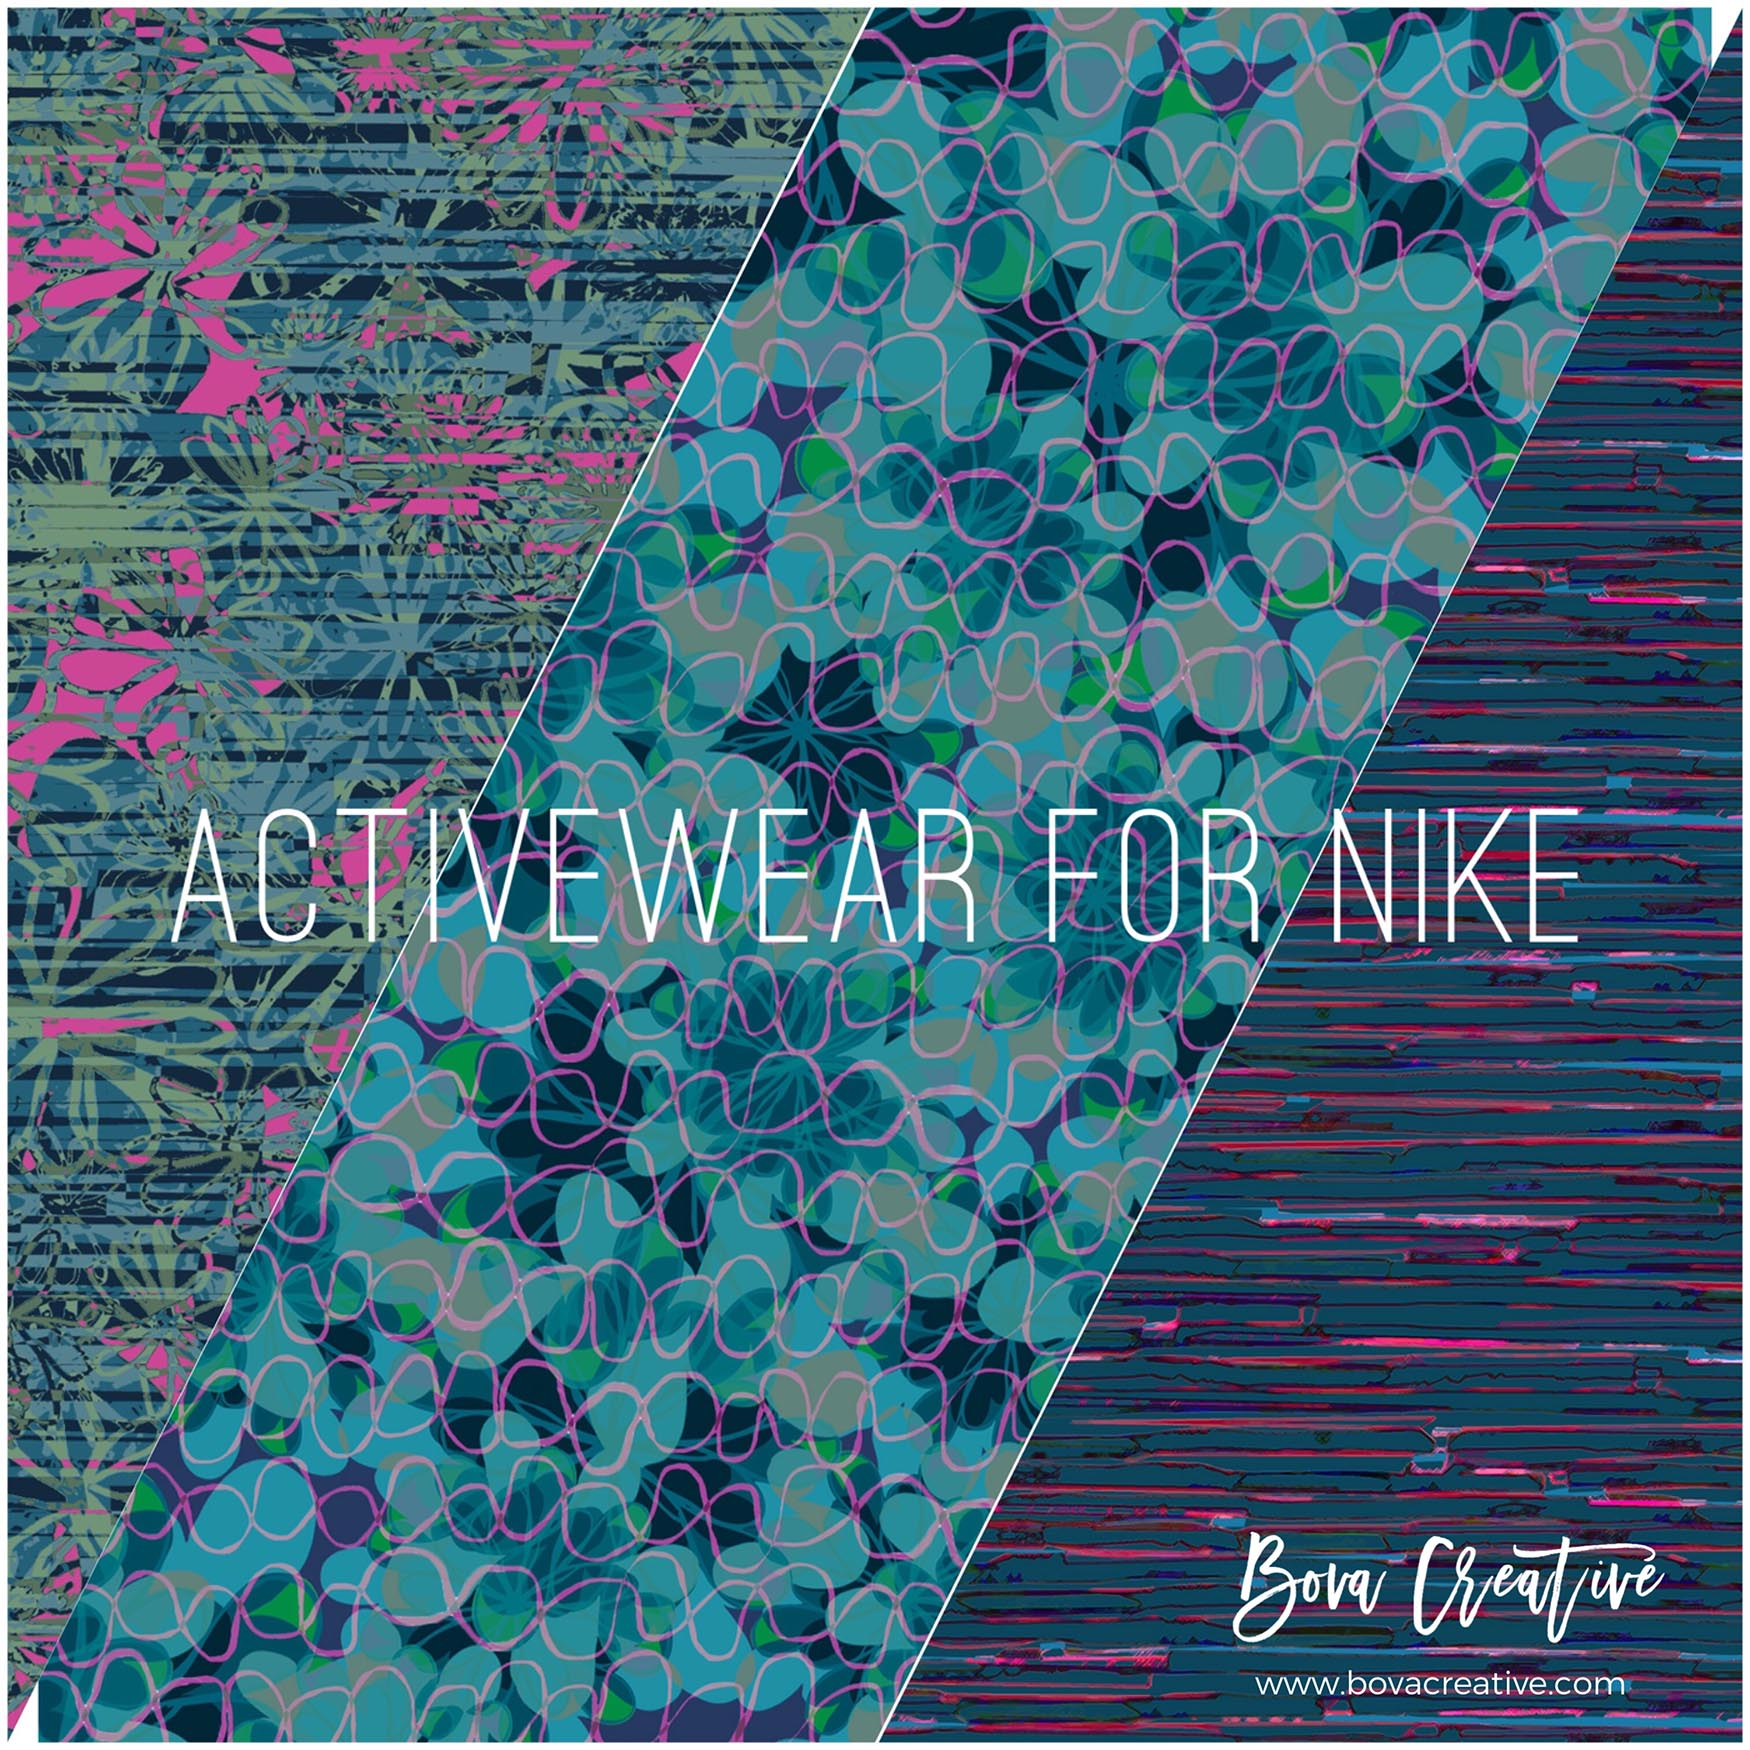 Bova Creative recent work for Nike Activewear